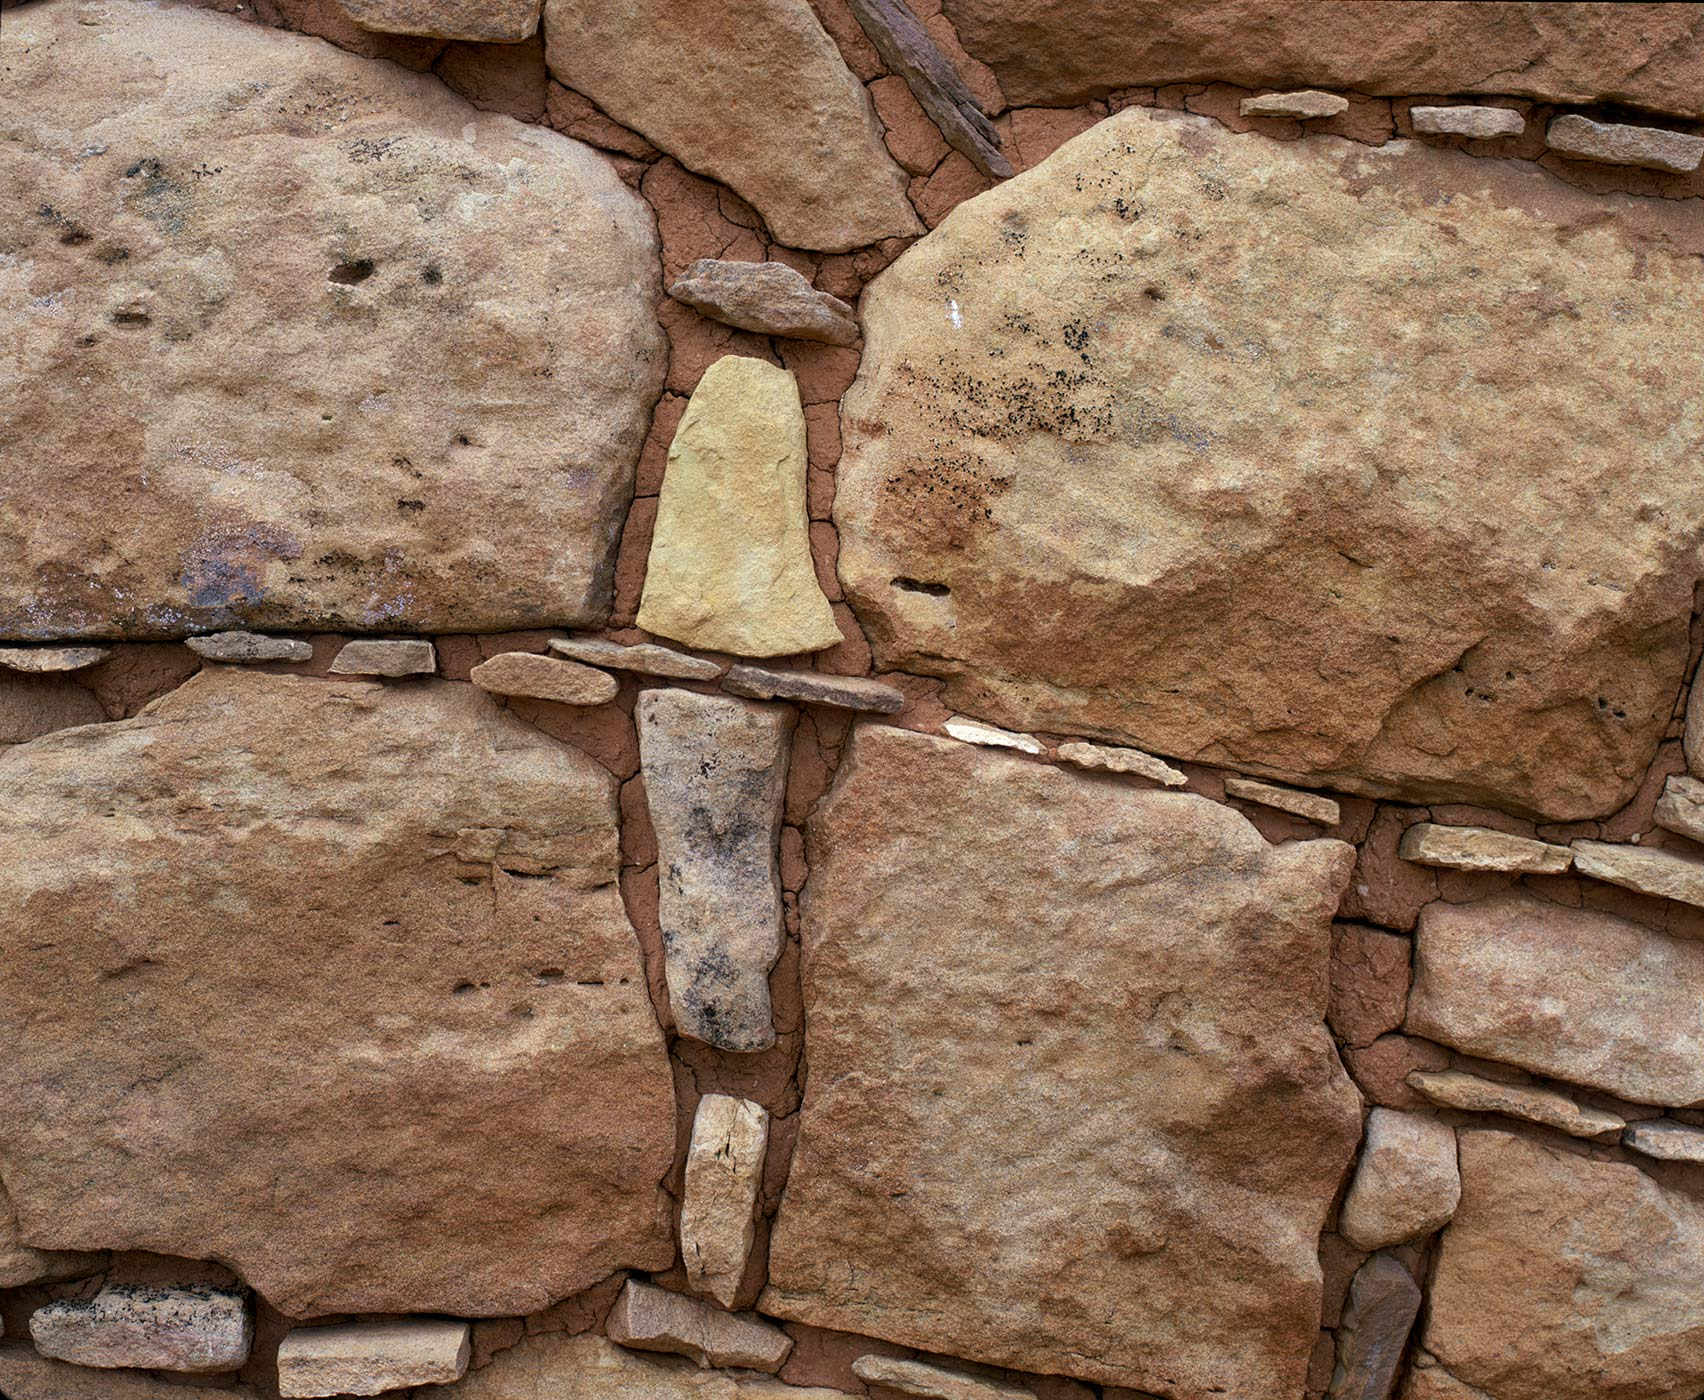 217 Pueblo Masonry Detail, Hovenweep National Monument, Colorado